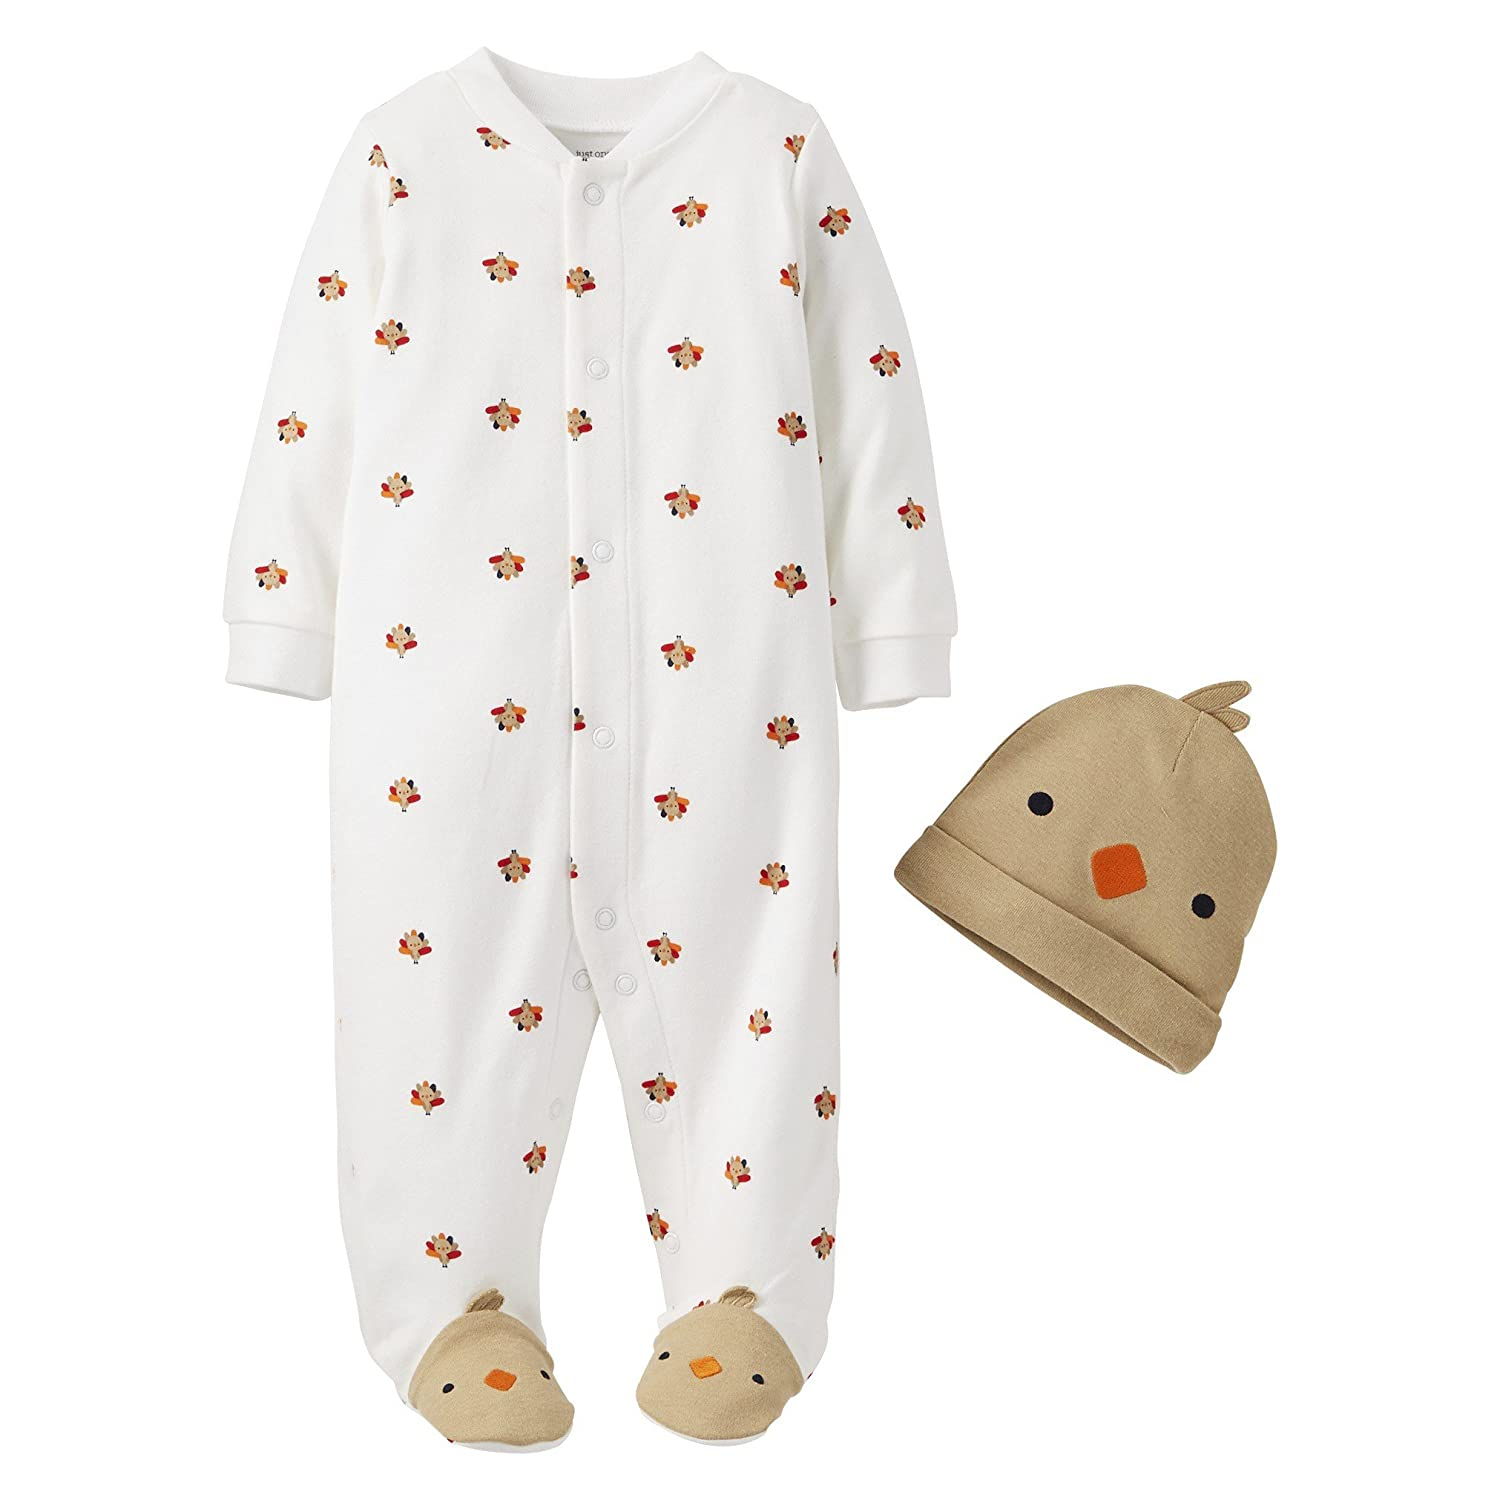 a2a8a5208e85 Amazon.com  Just One You Made By Carter s Baby Boys  Infant 2 Pc ...